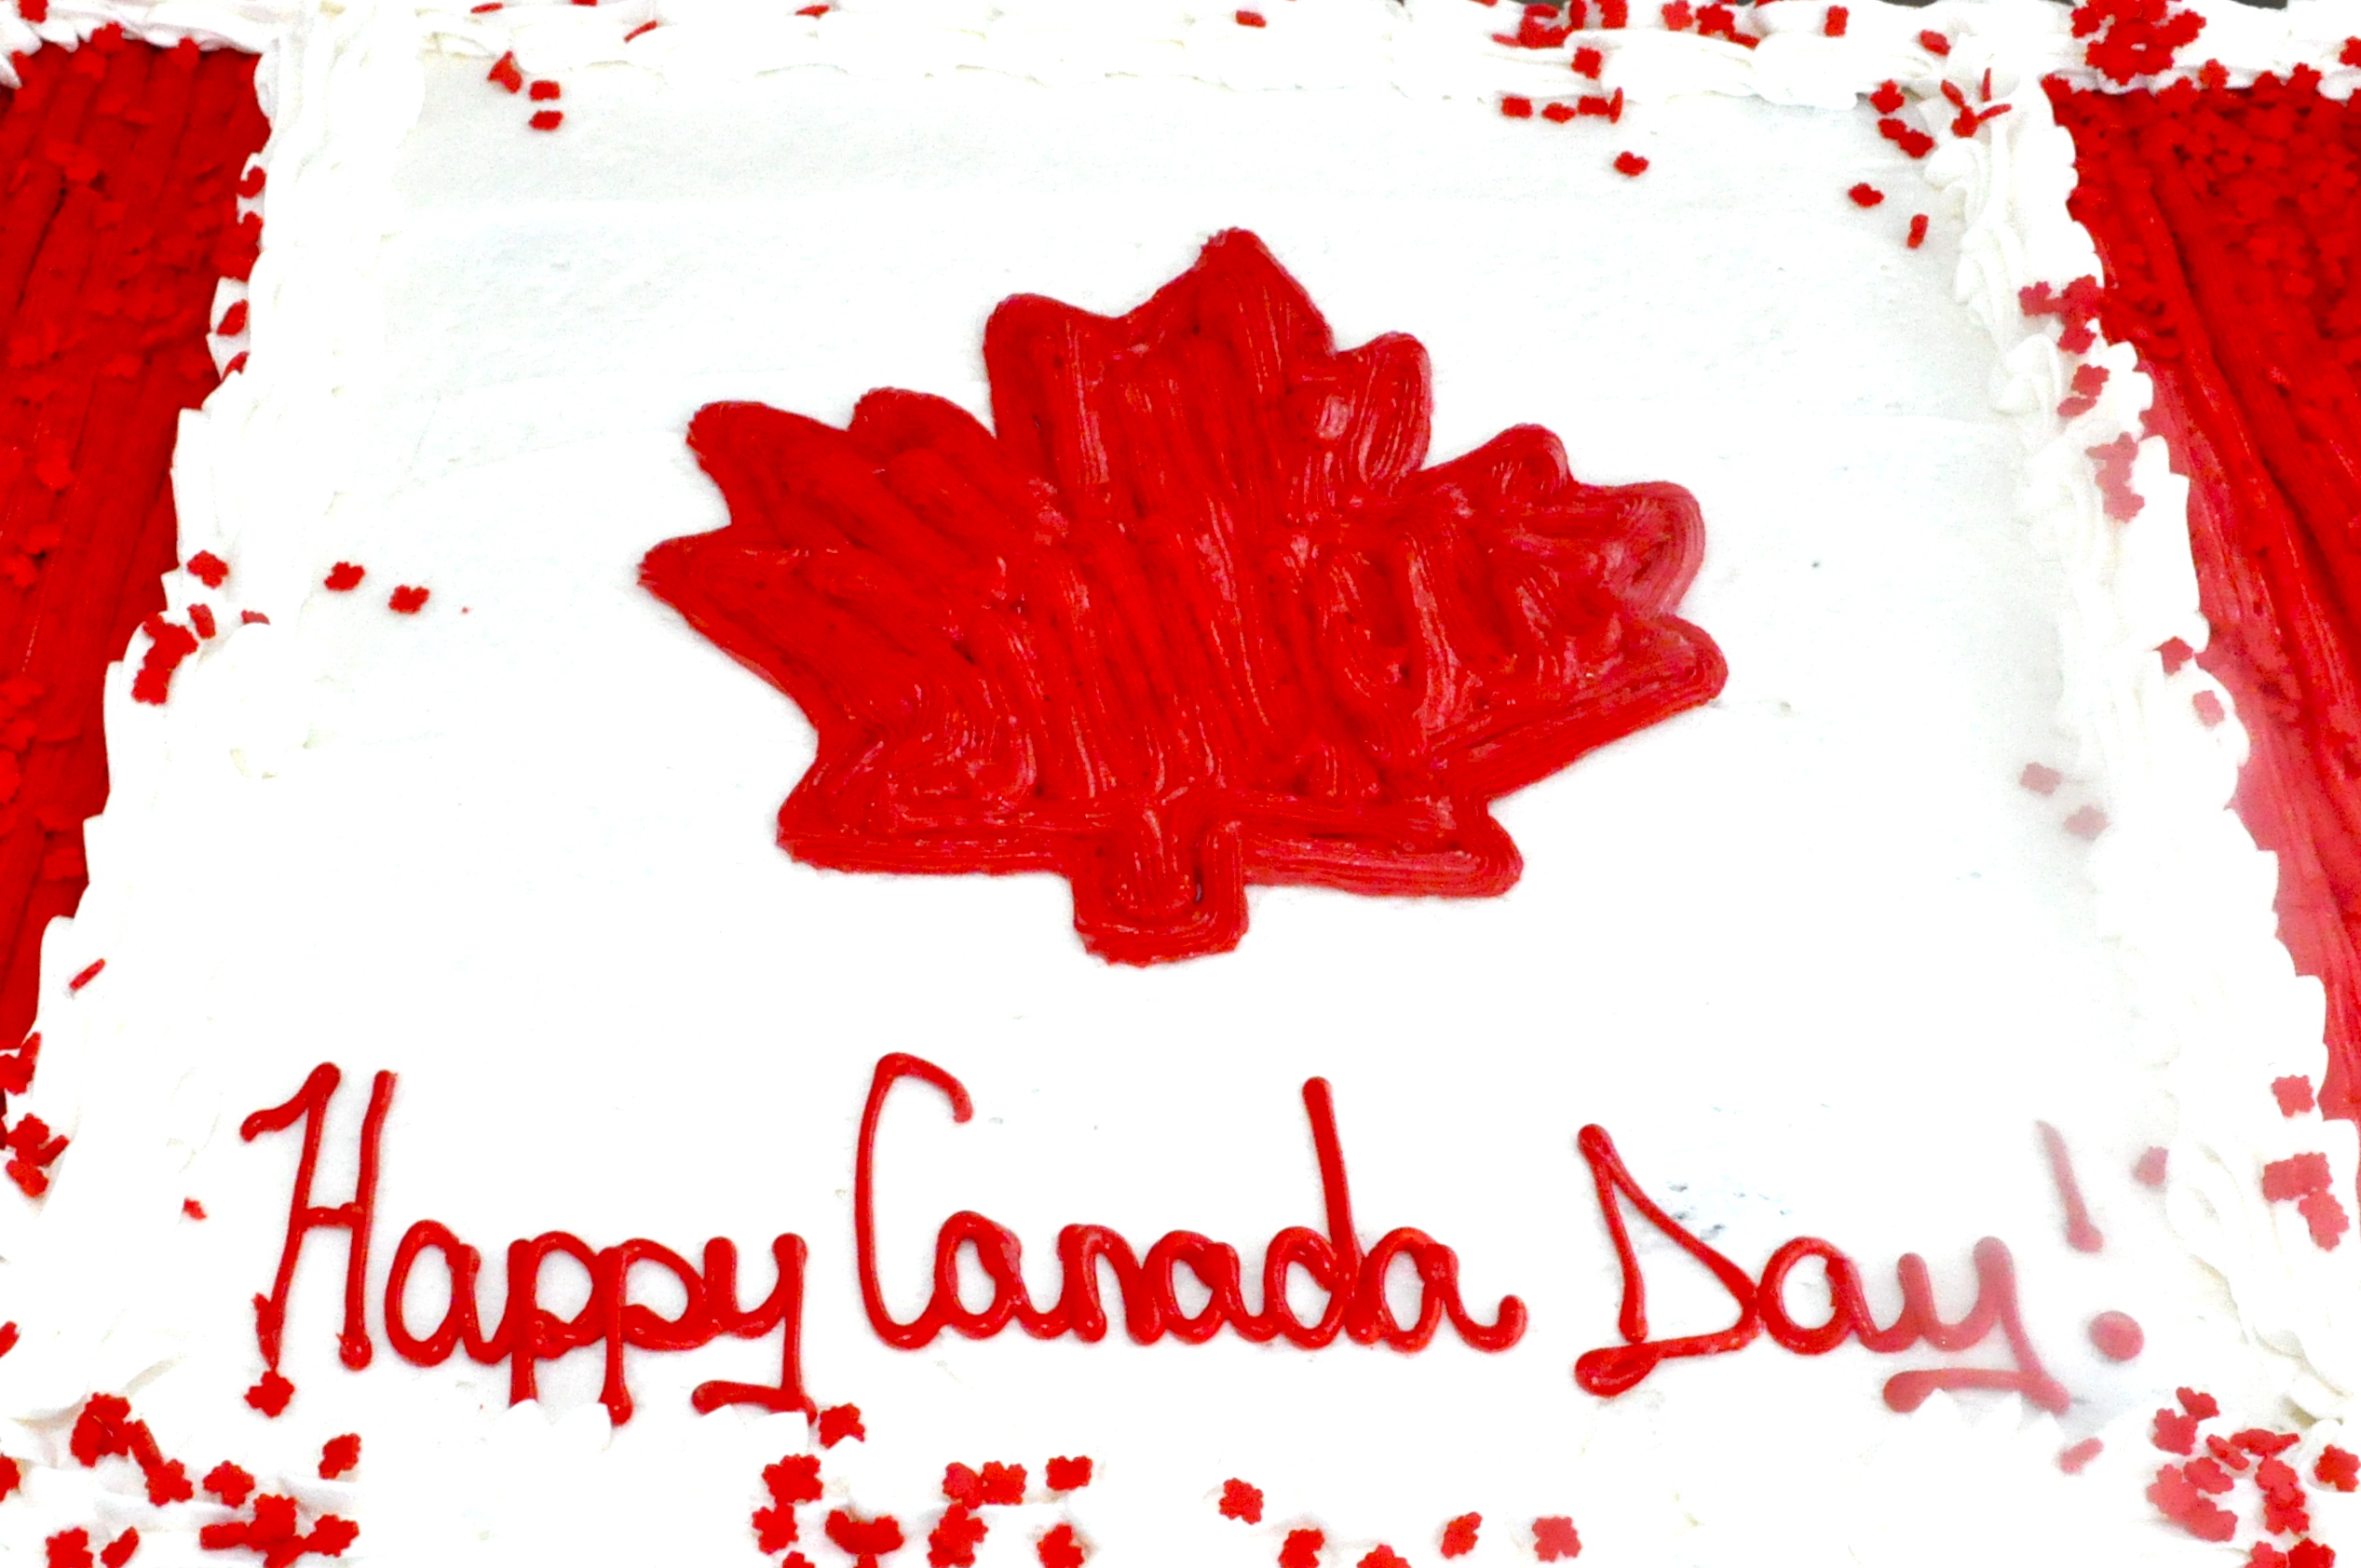 happy canada day hd wallpapers cover pictures images with best wishes (6)